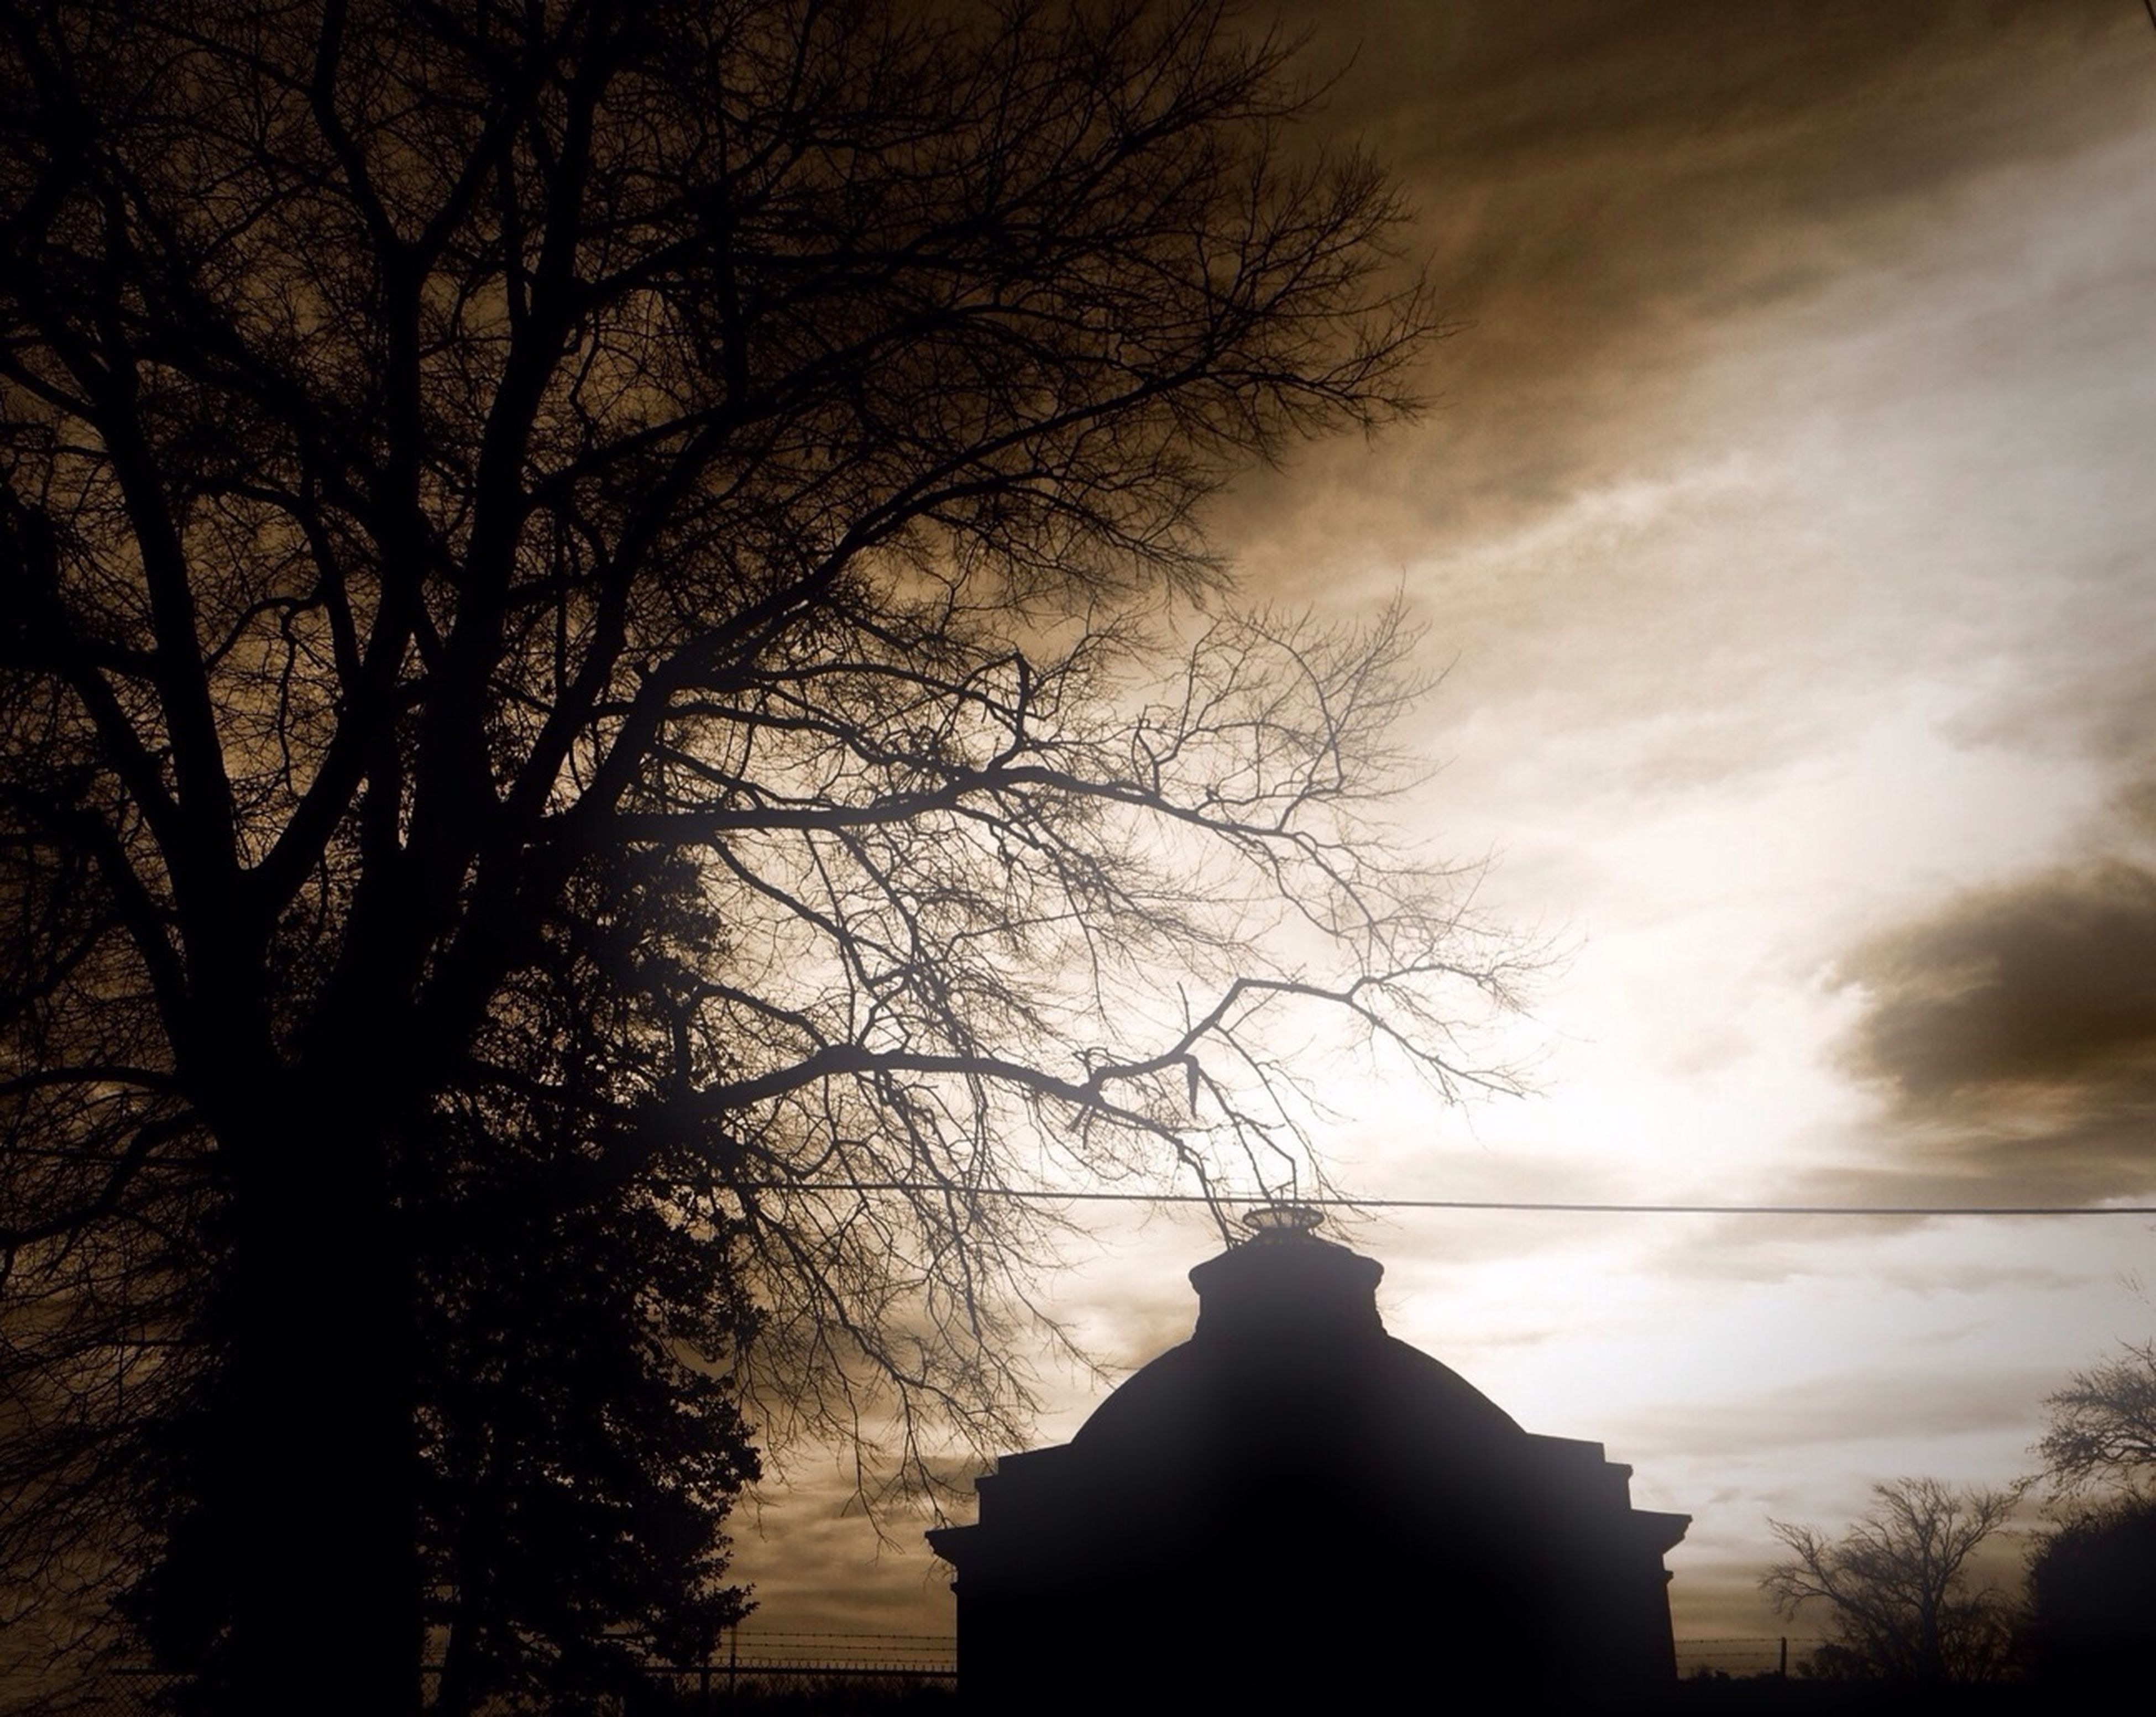 tree, silhouette, bare tree, sky, branch, sunset, cloud - sky, built structure, low angle view, architecture, building exterior, dusk, nature, tranquility, cloudy, cloud, beauty in nature, outdoors, spirituality, no people